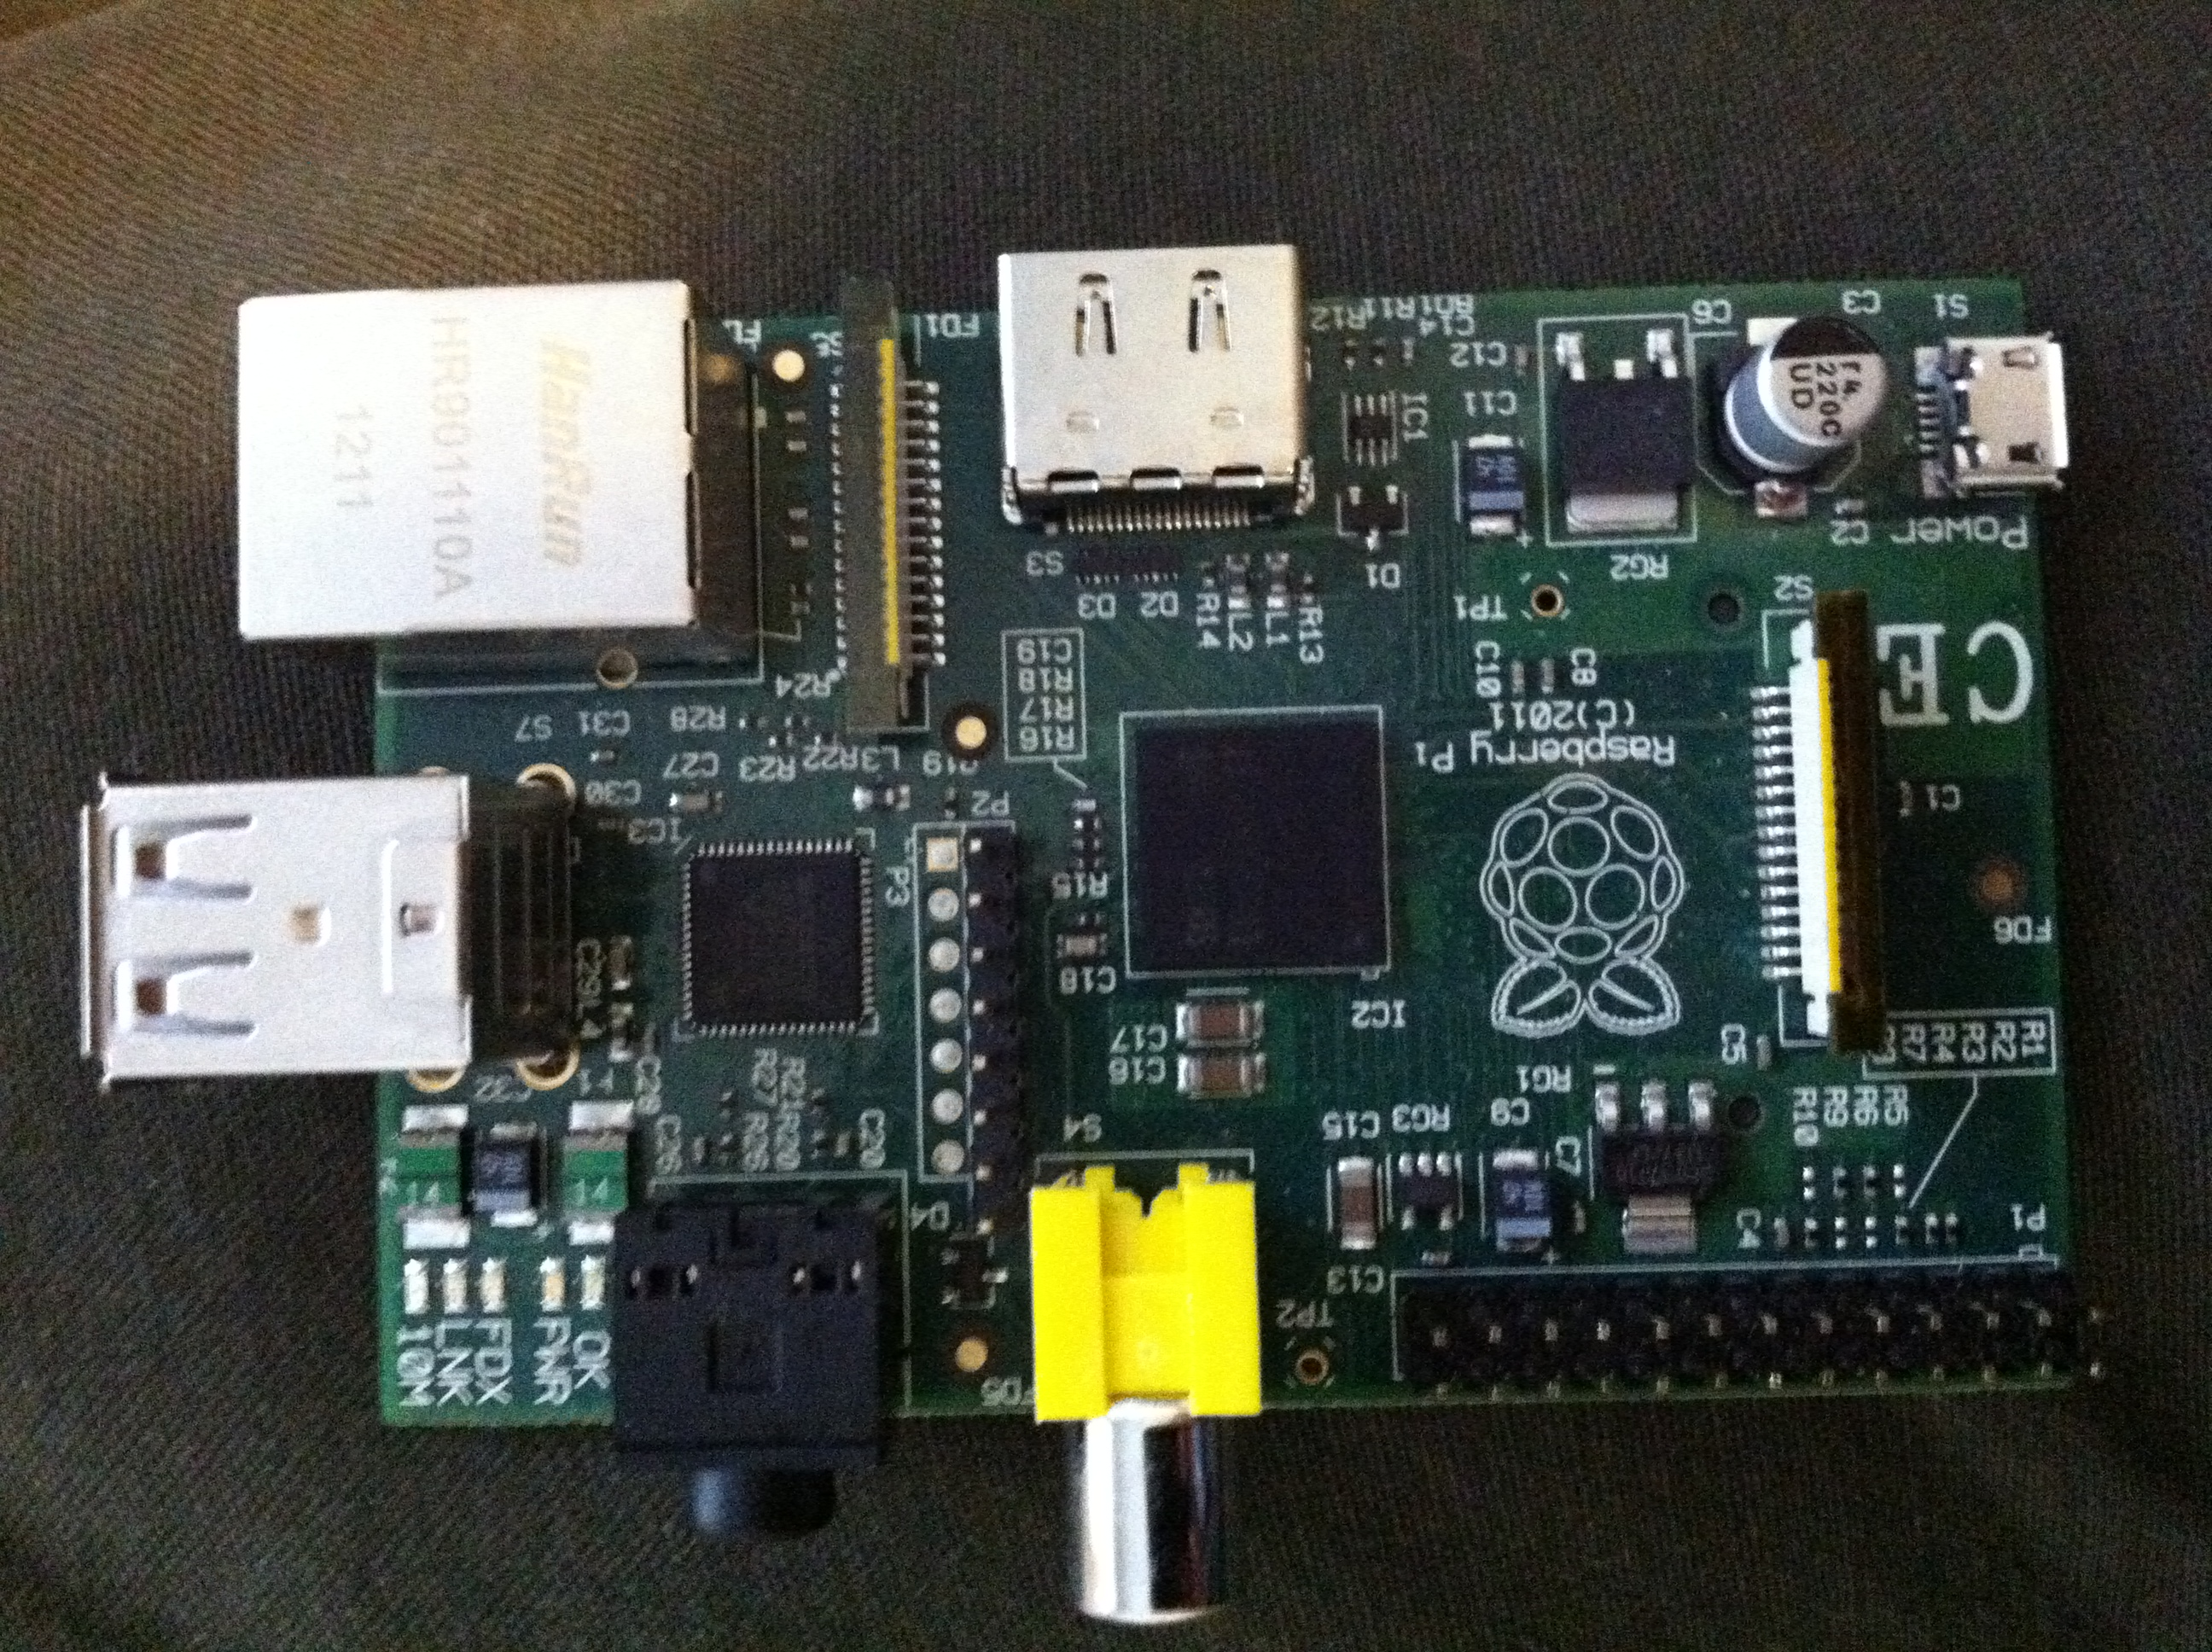 MyLittlePwny - Make a self powered pentesting box out of the Raspberry Pi for around $100